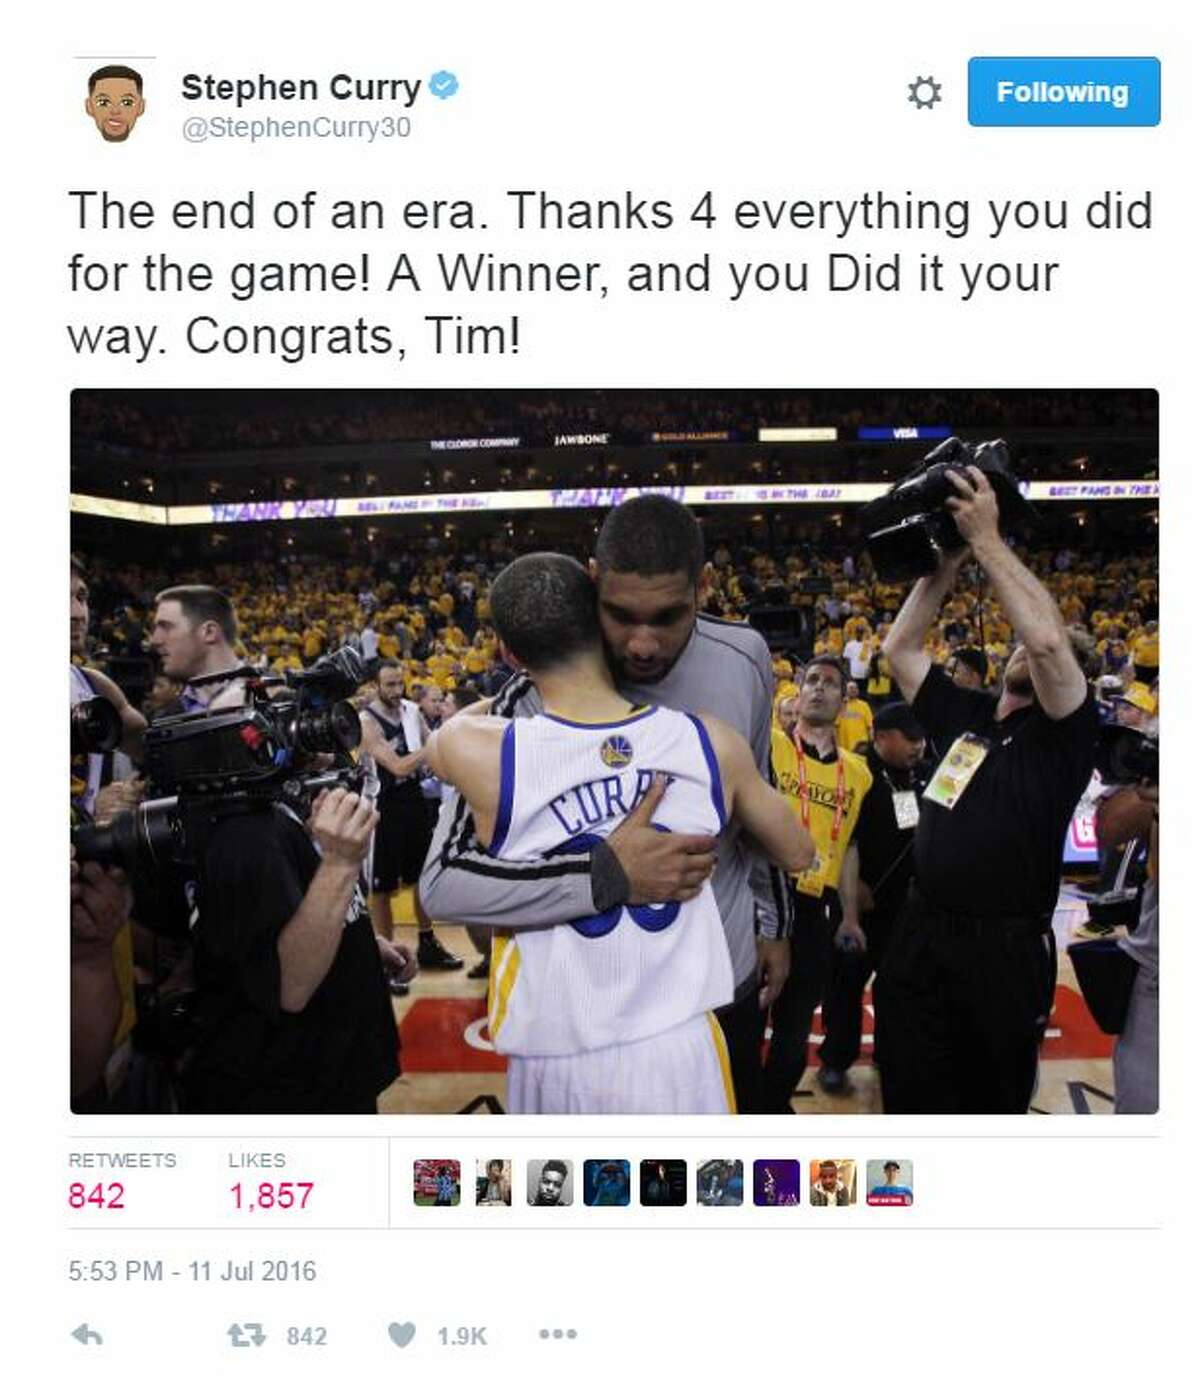 @StephenCurry30: The end of an era. Thanks 4 everything you did for the game! A Winner, and you Did it your way. Congrats, Tim!